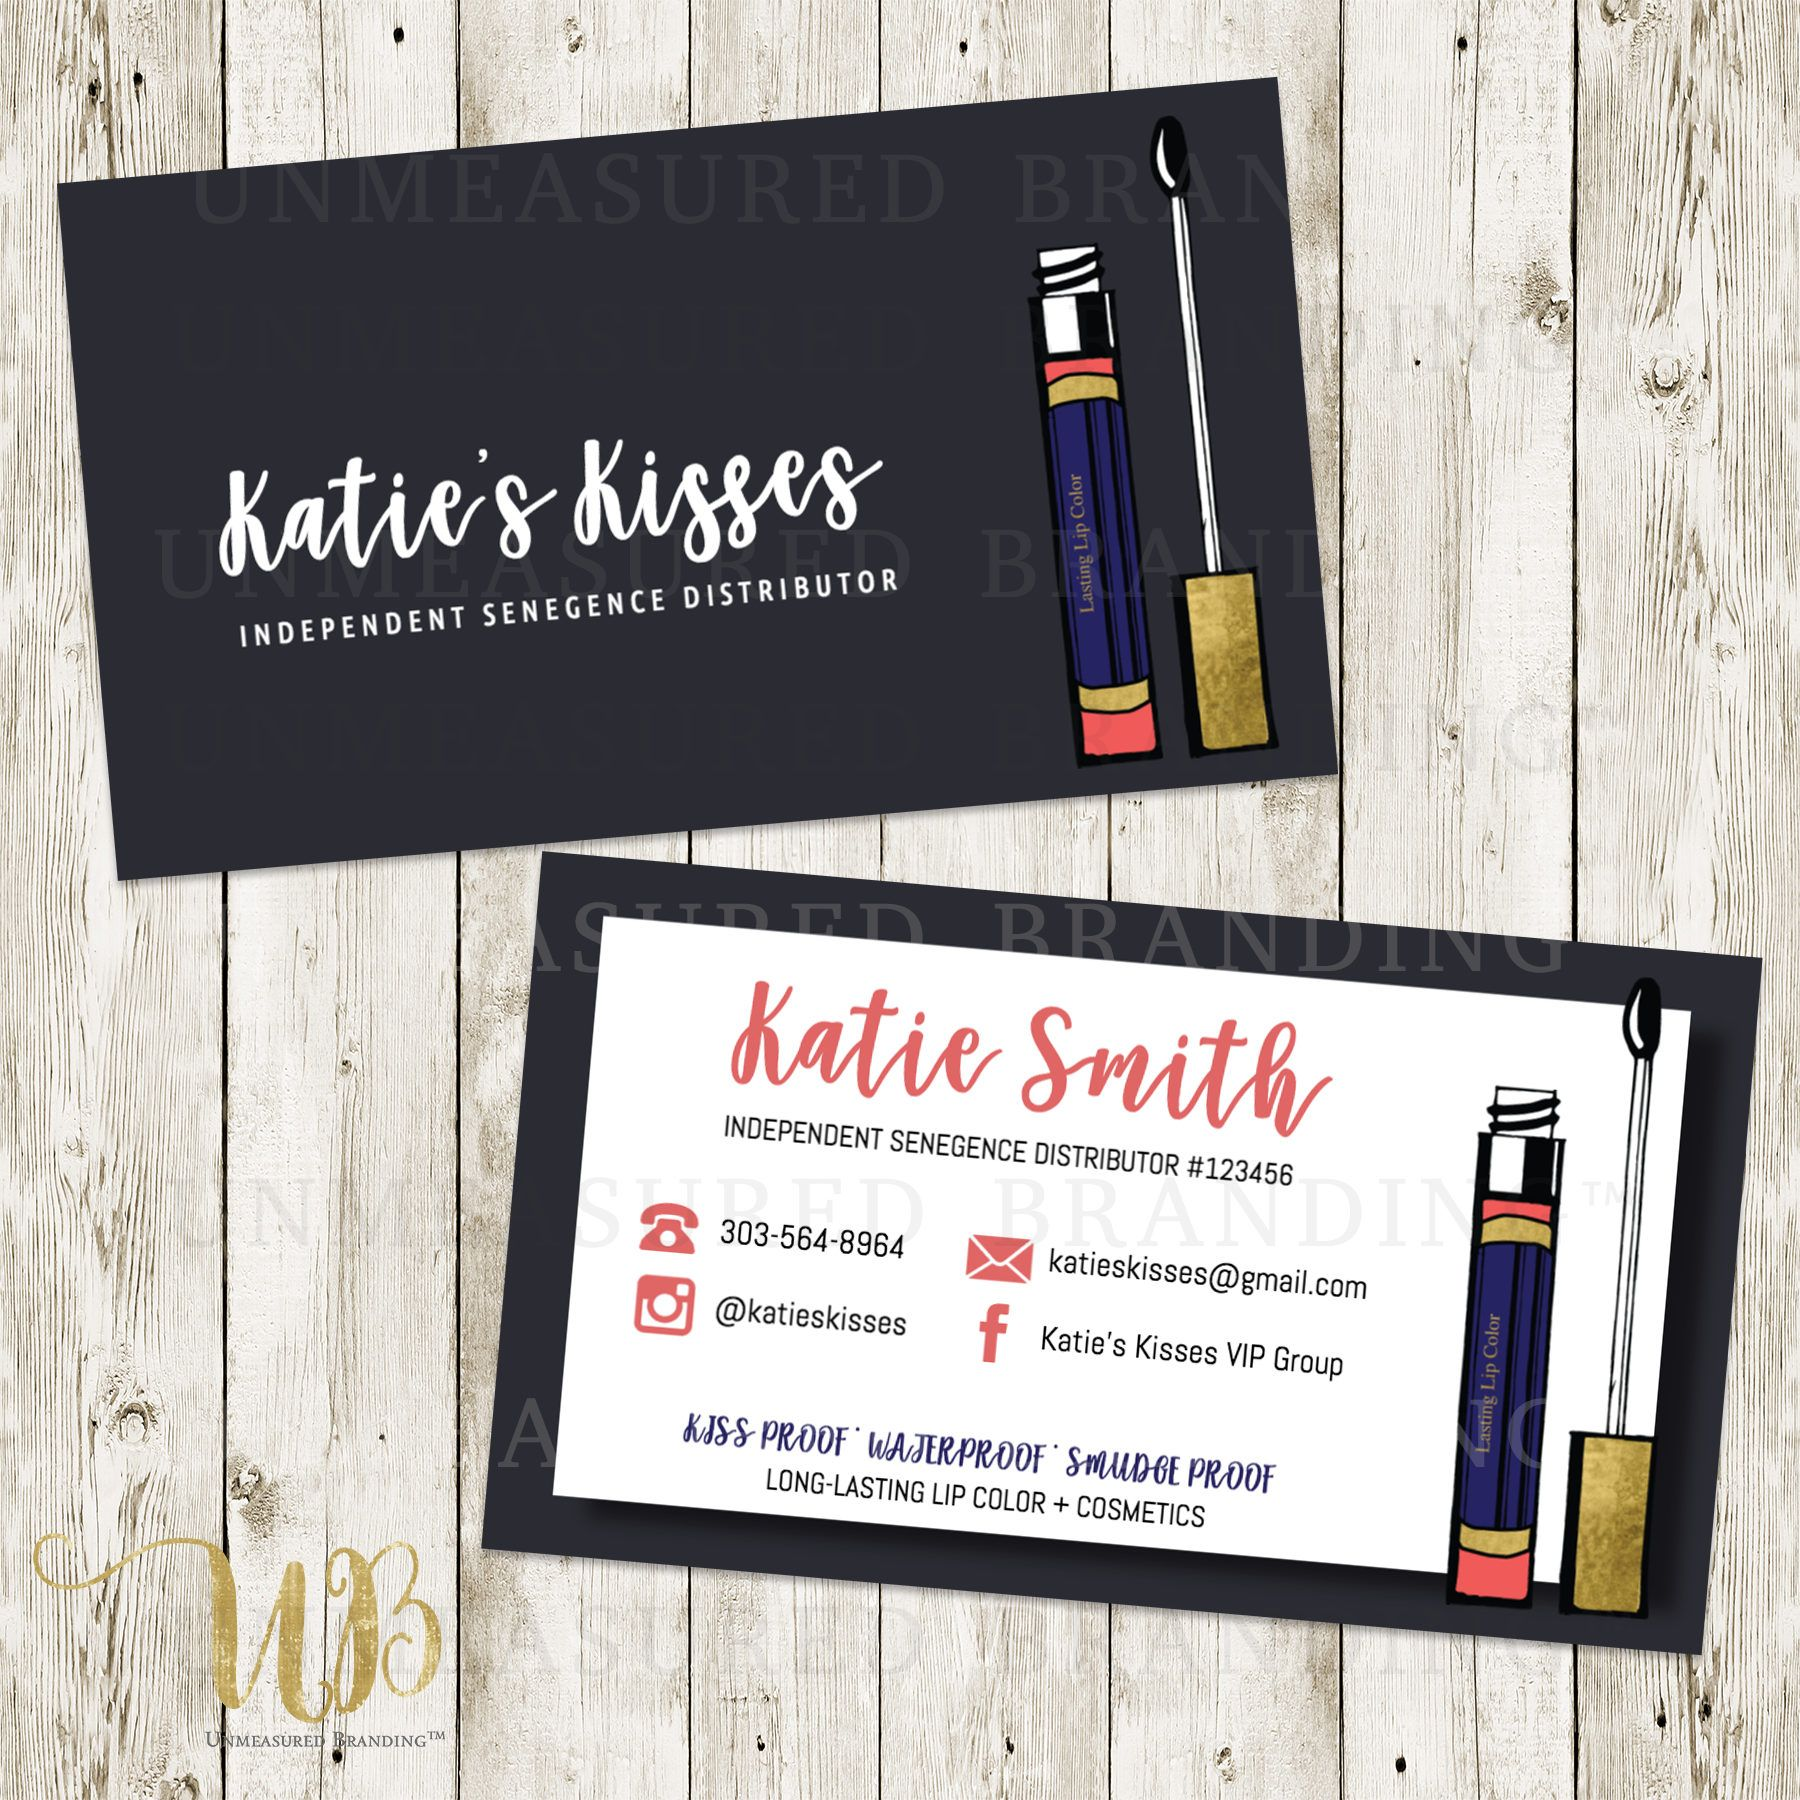 Lipsense Business Cards Senegence Business Cards Gold Business